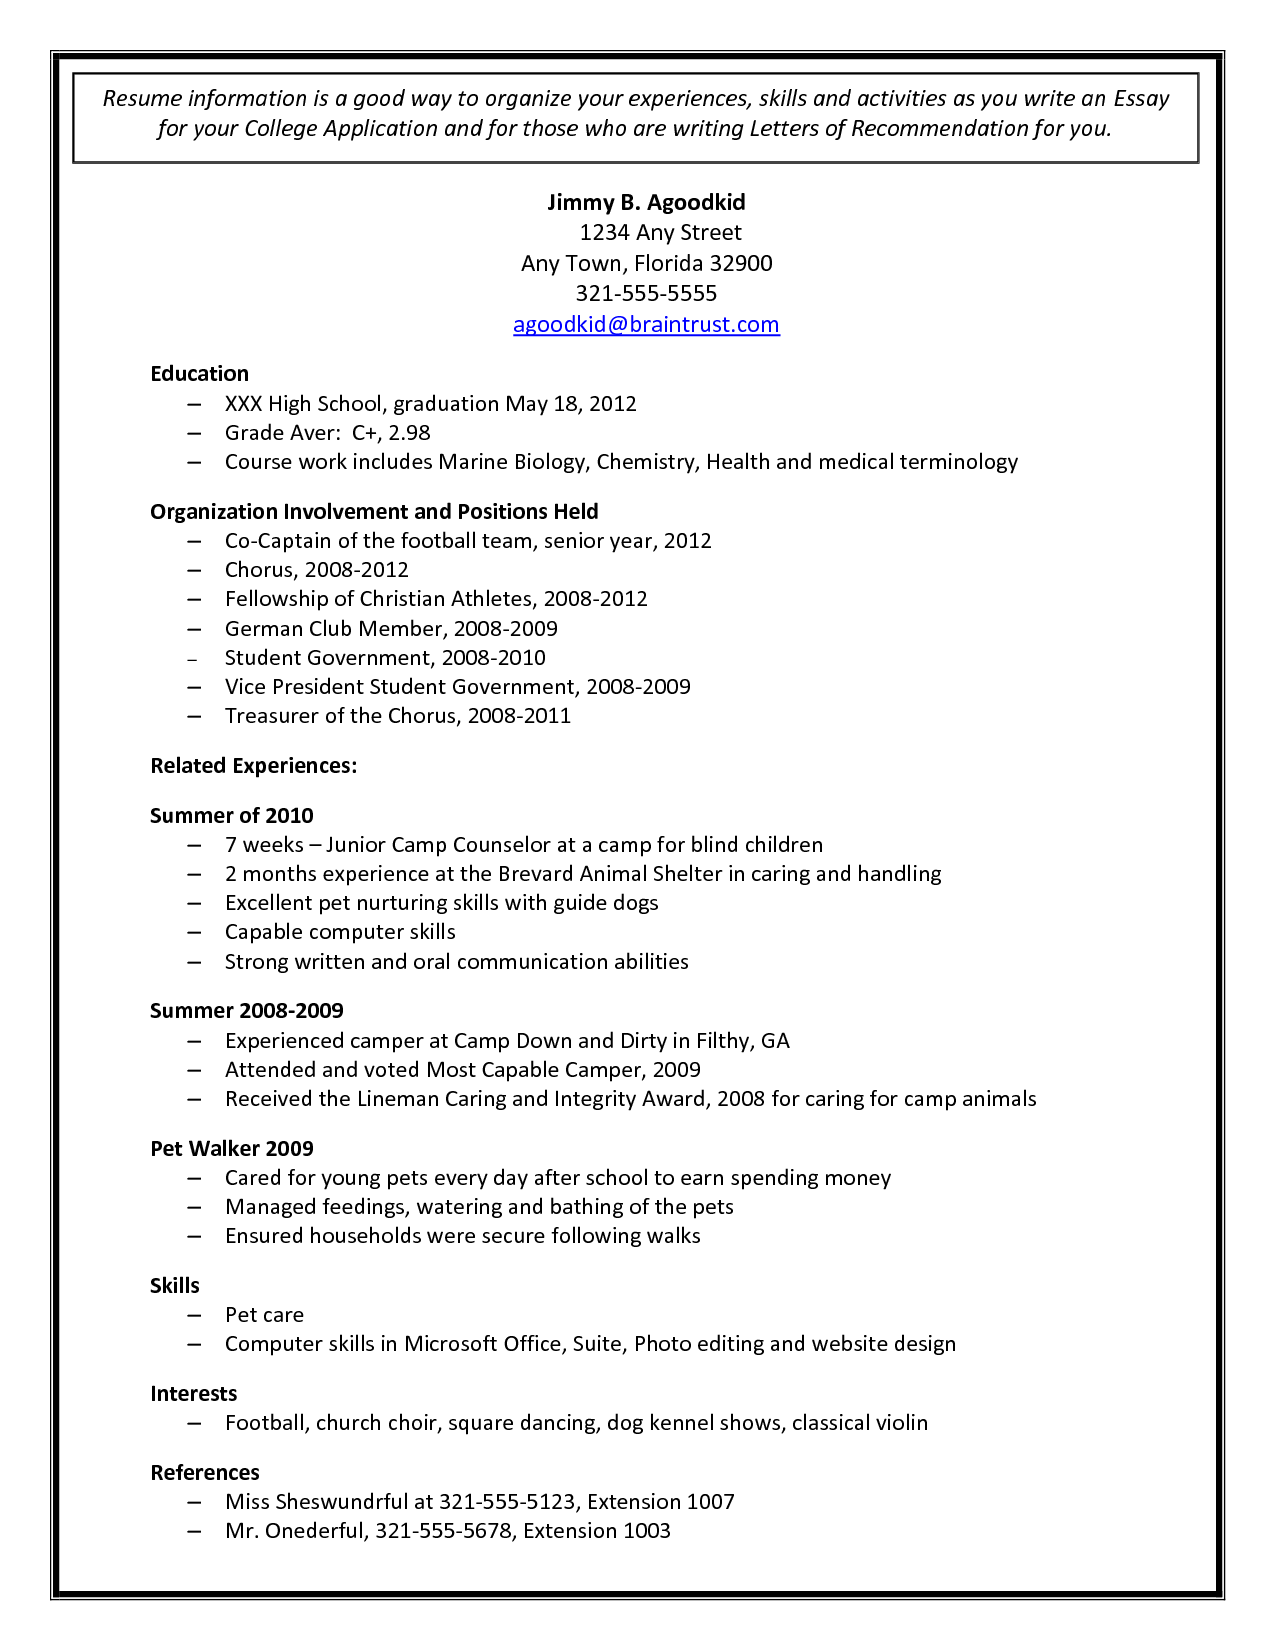 Resume College Admission Resume Builder college admission resume pdf free download fancy design template document sample resume